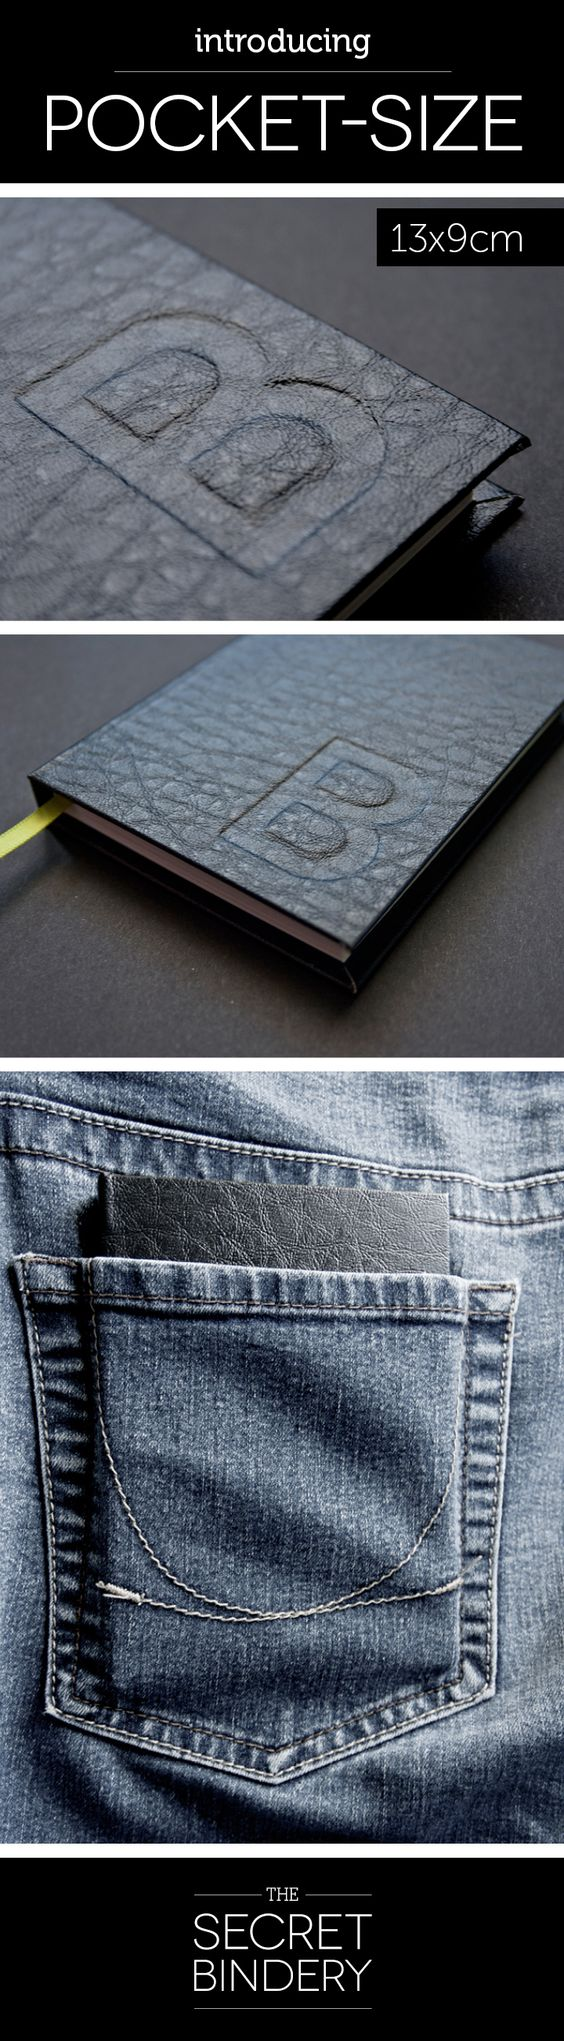 The all new hand-embossed, pocket-size journal by The Secret Bindery http://www.facebook.com/thesecretbindery